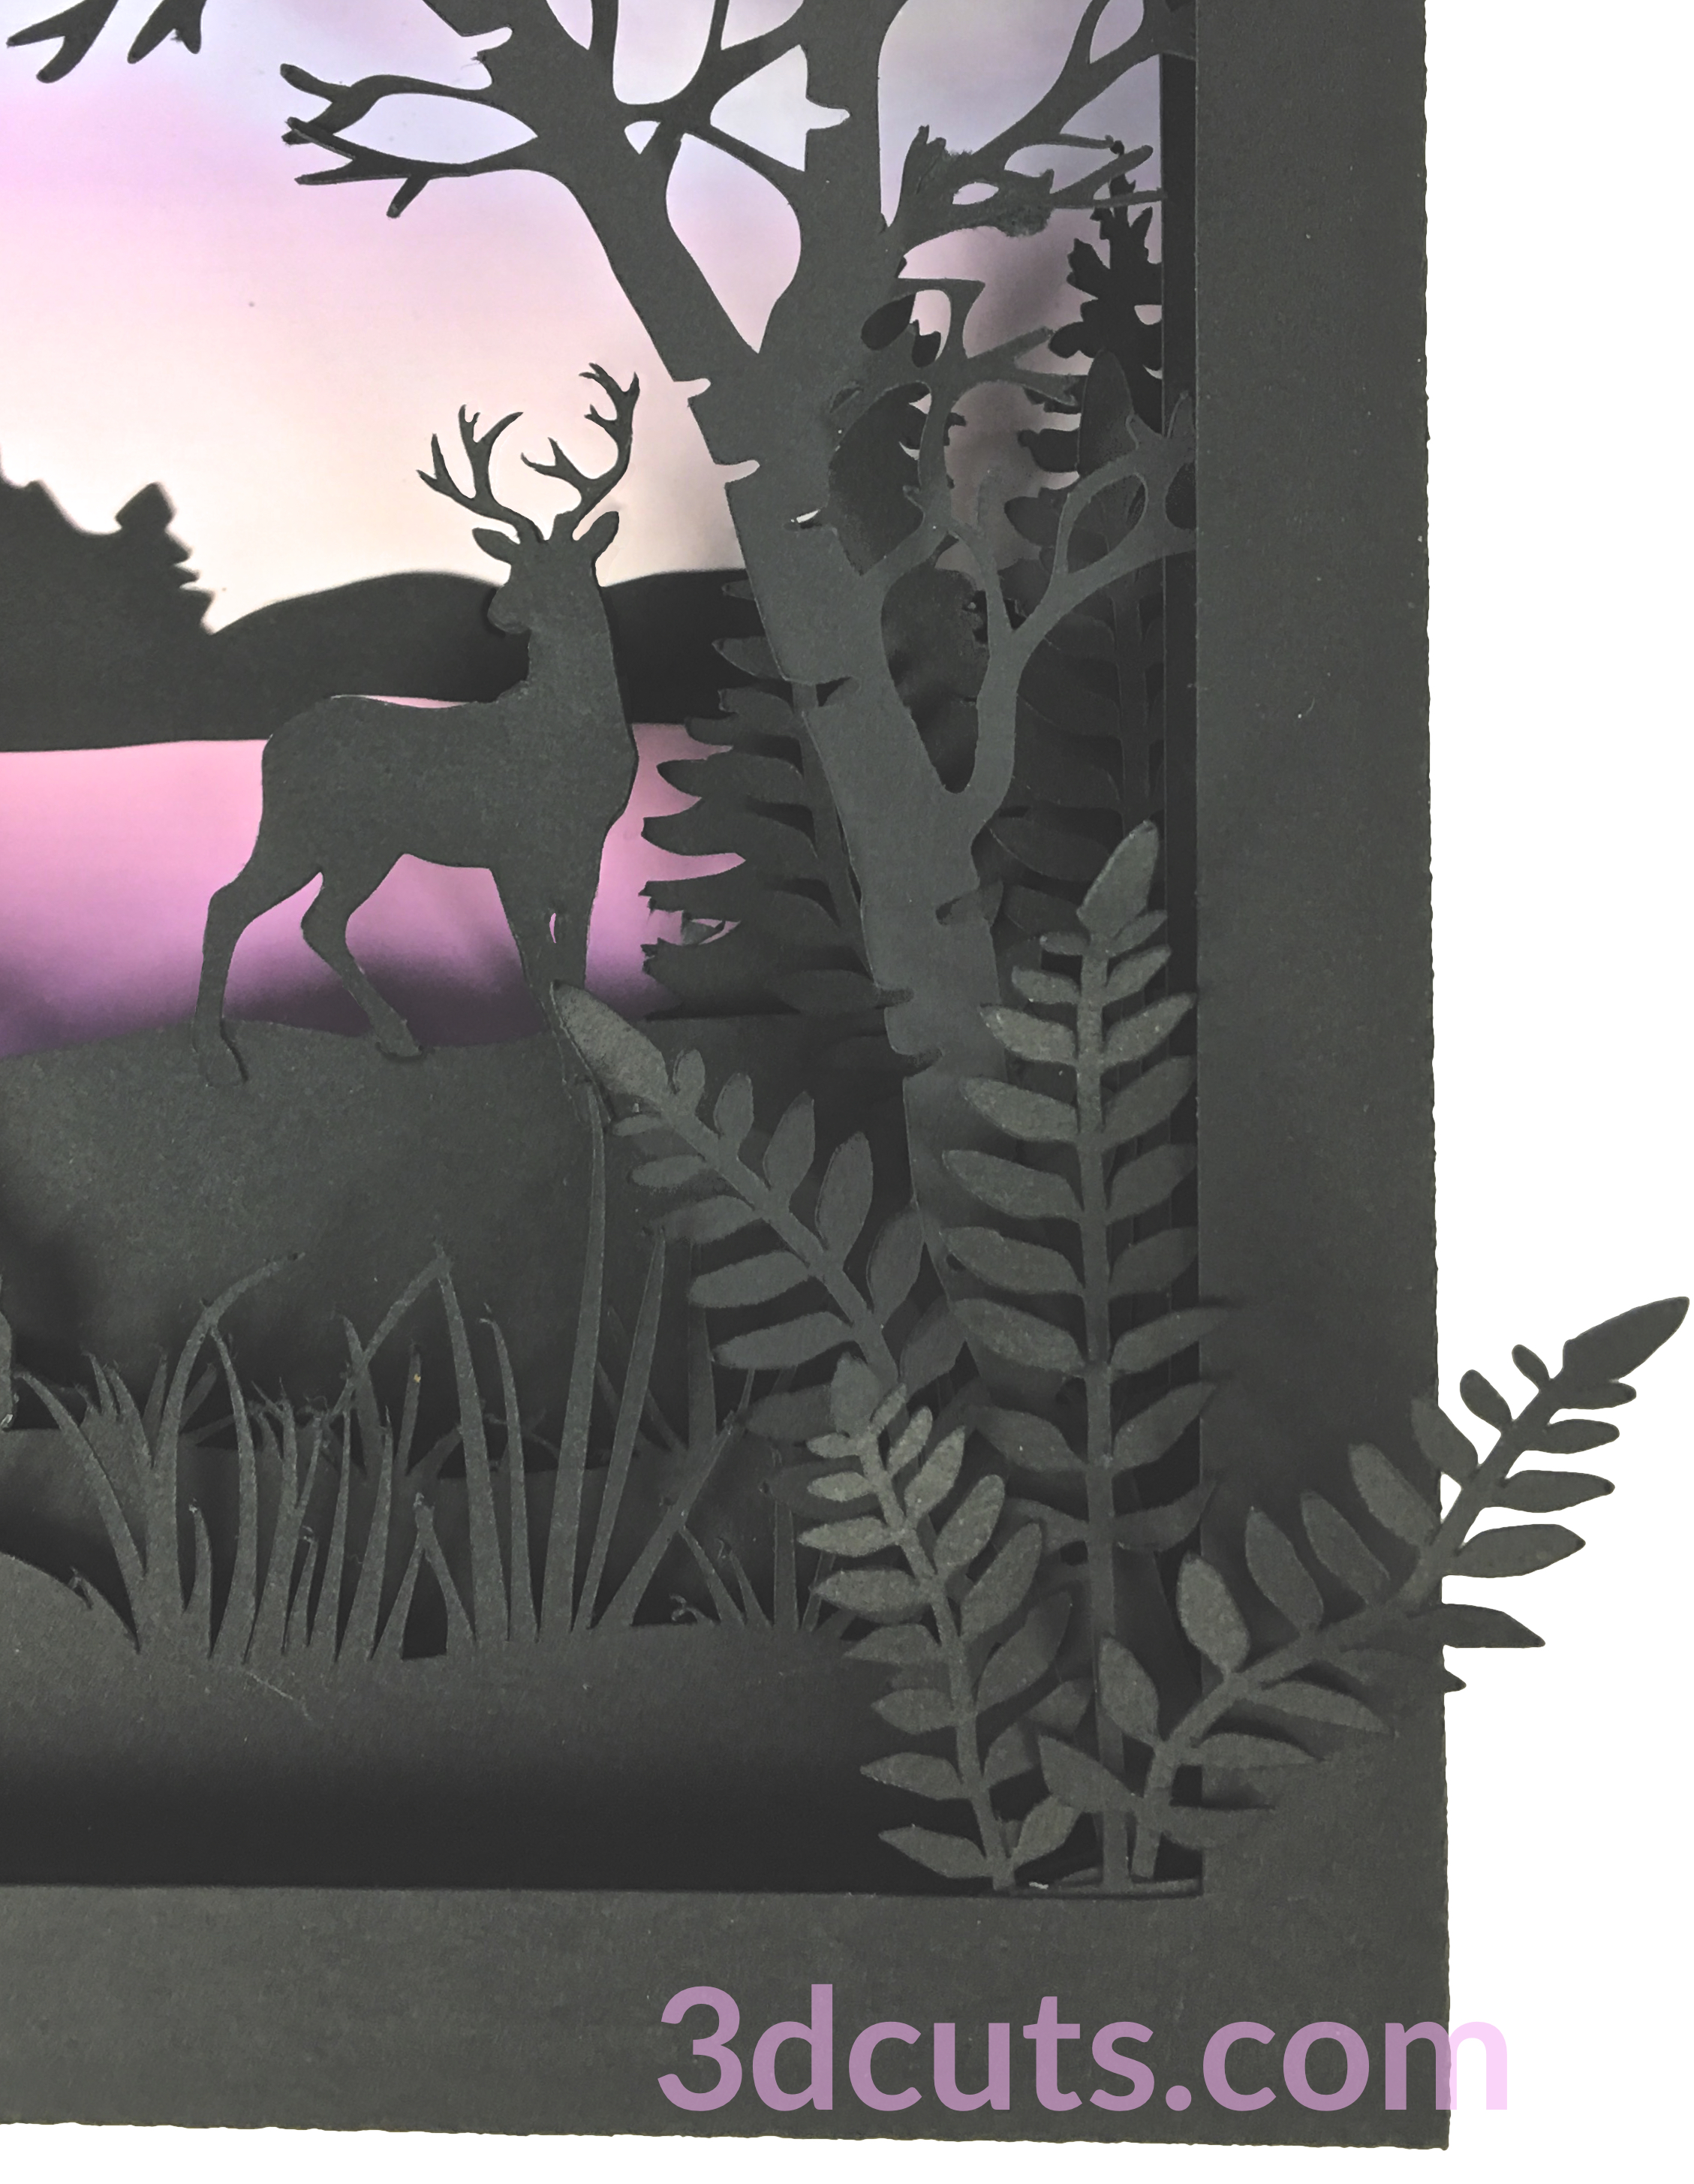 Detail - Deer Shadow box by Marji Roy of 3dcuts.com. This is a cutting file for use on Cricut and Silhouette cutting machine. It is made from card stock. Files available in svg, pdf, png and pdf formats.